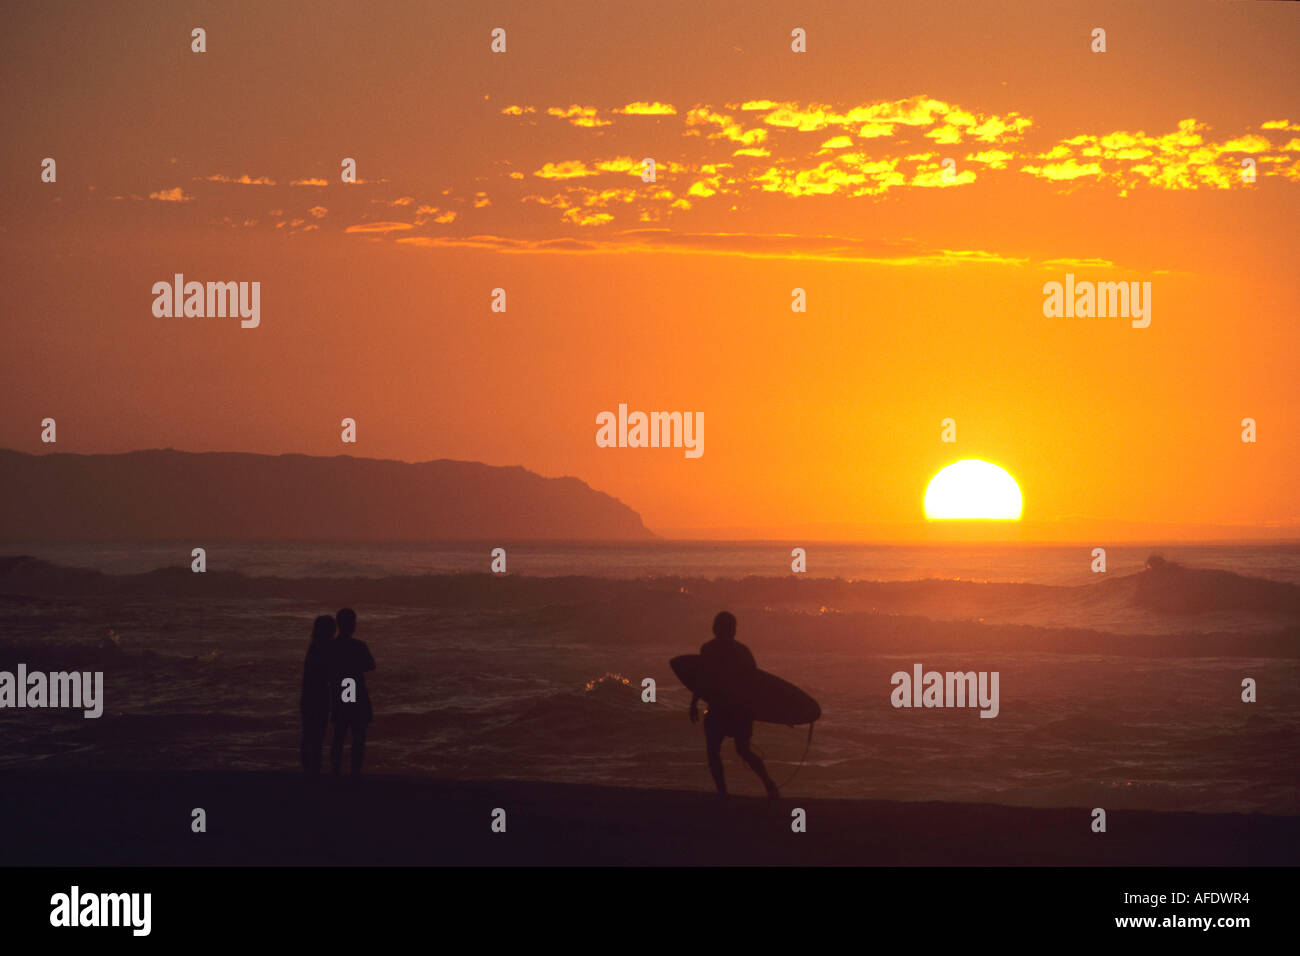 Couple & Surfer at Sunset, Barking Sands Beach, Polihale State Park, Kauai, Hawaii, USA Stock Photo